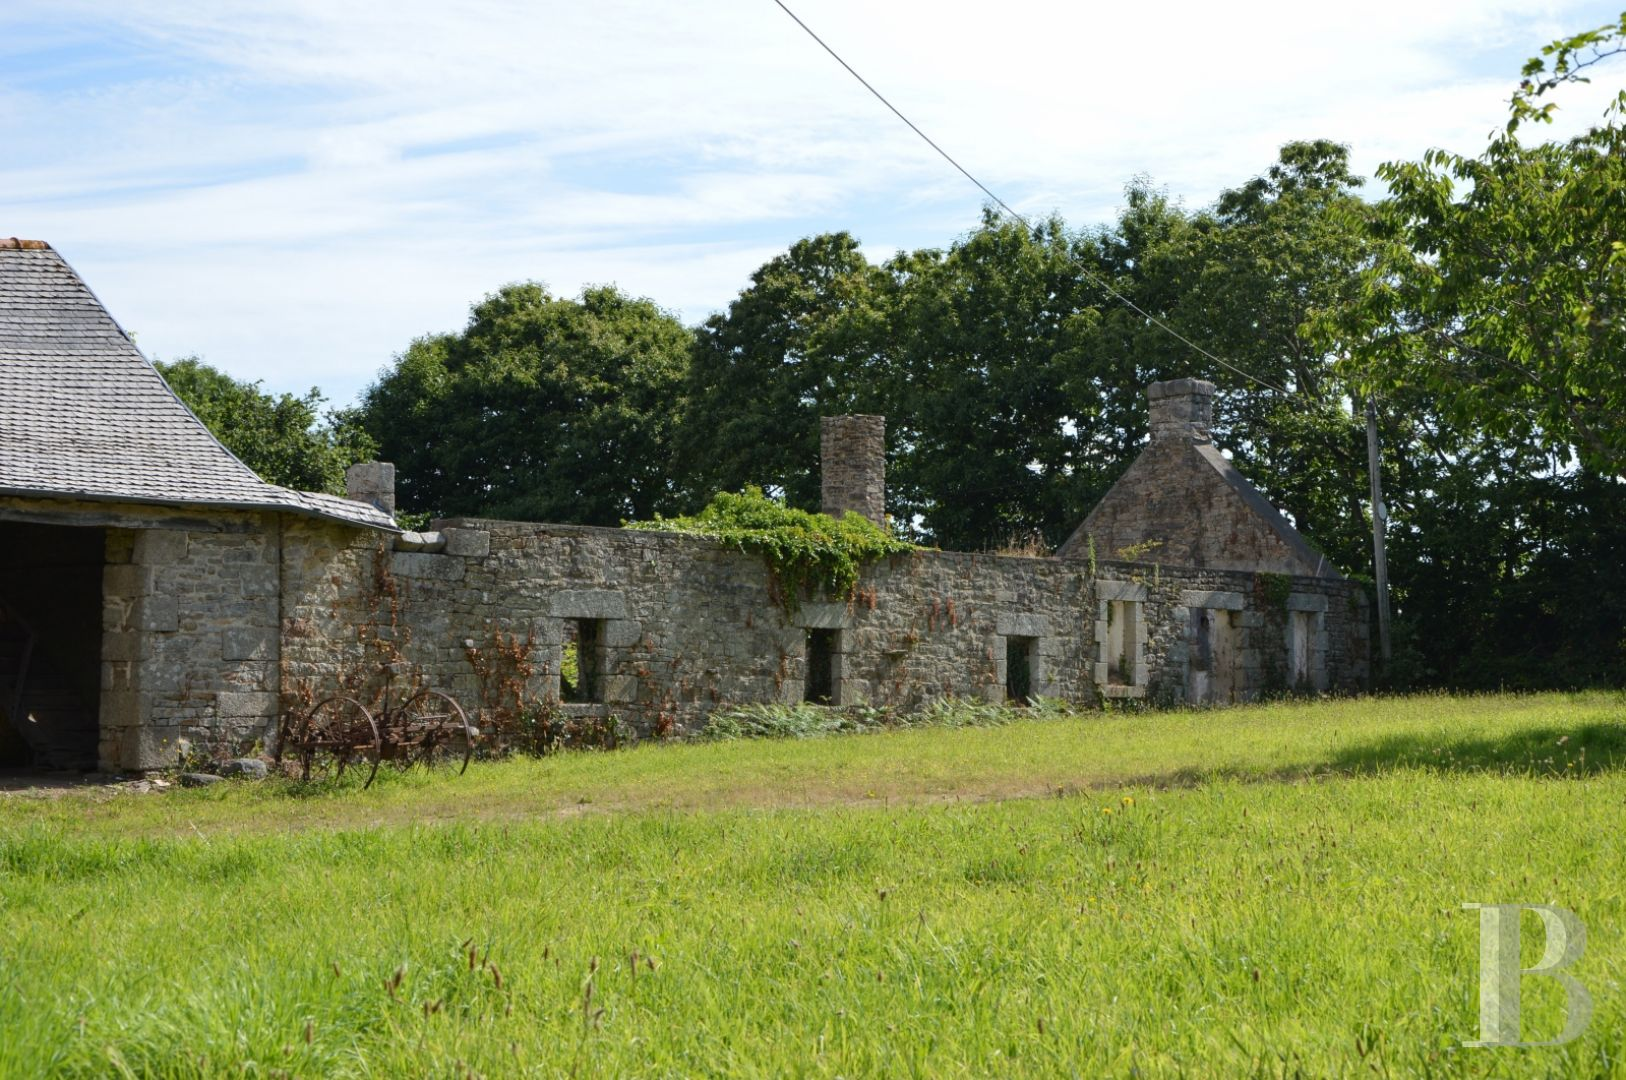 France mansions for sale brittany finistere property - 10 zoom